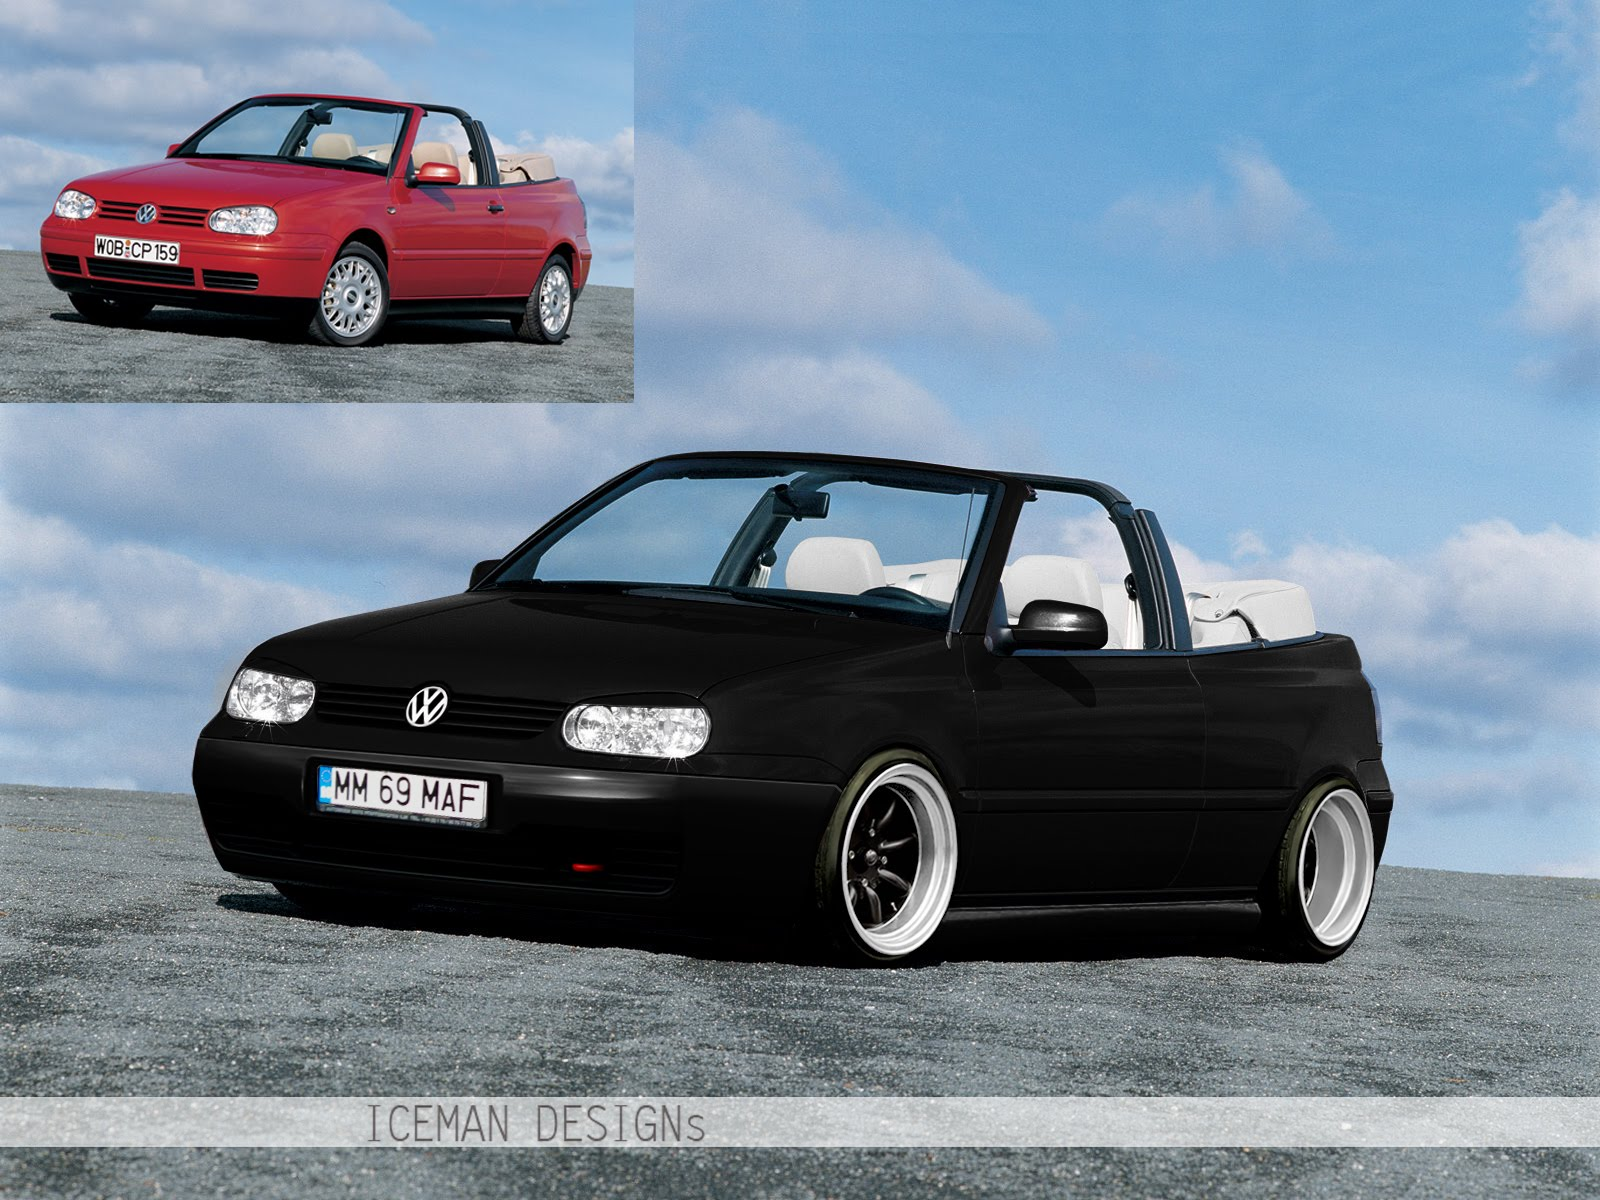 icemangraphics volkswagen golf 4 cabrio by iceman. Black Bedroom Furniture Sets. Home Design Ideas